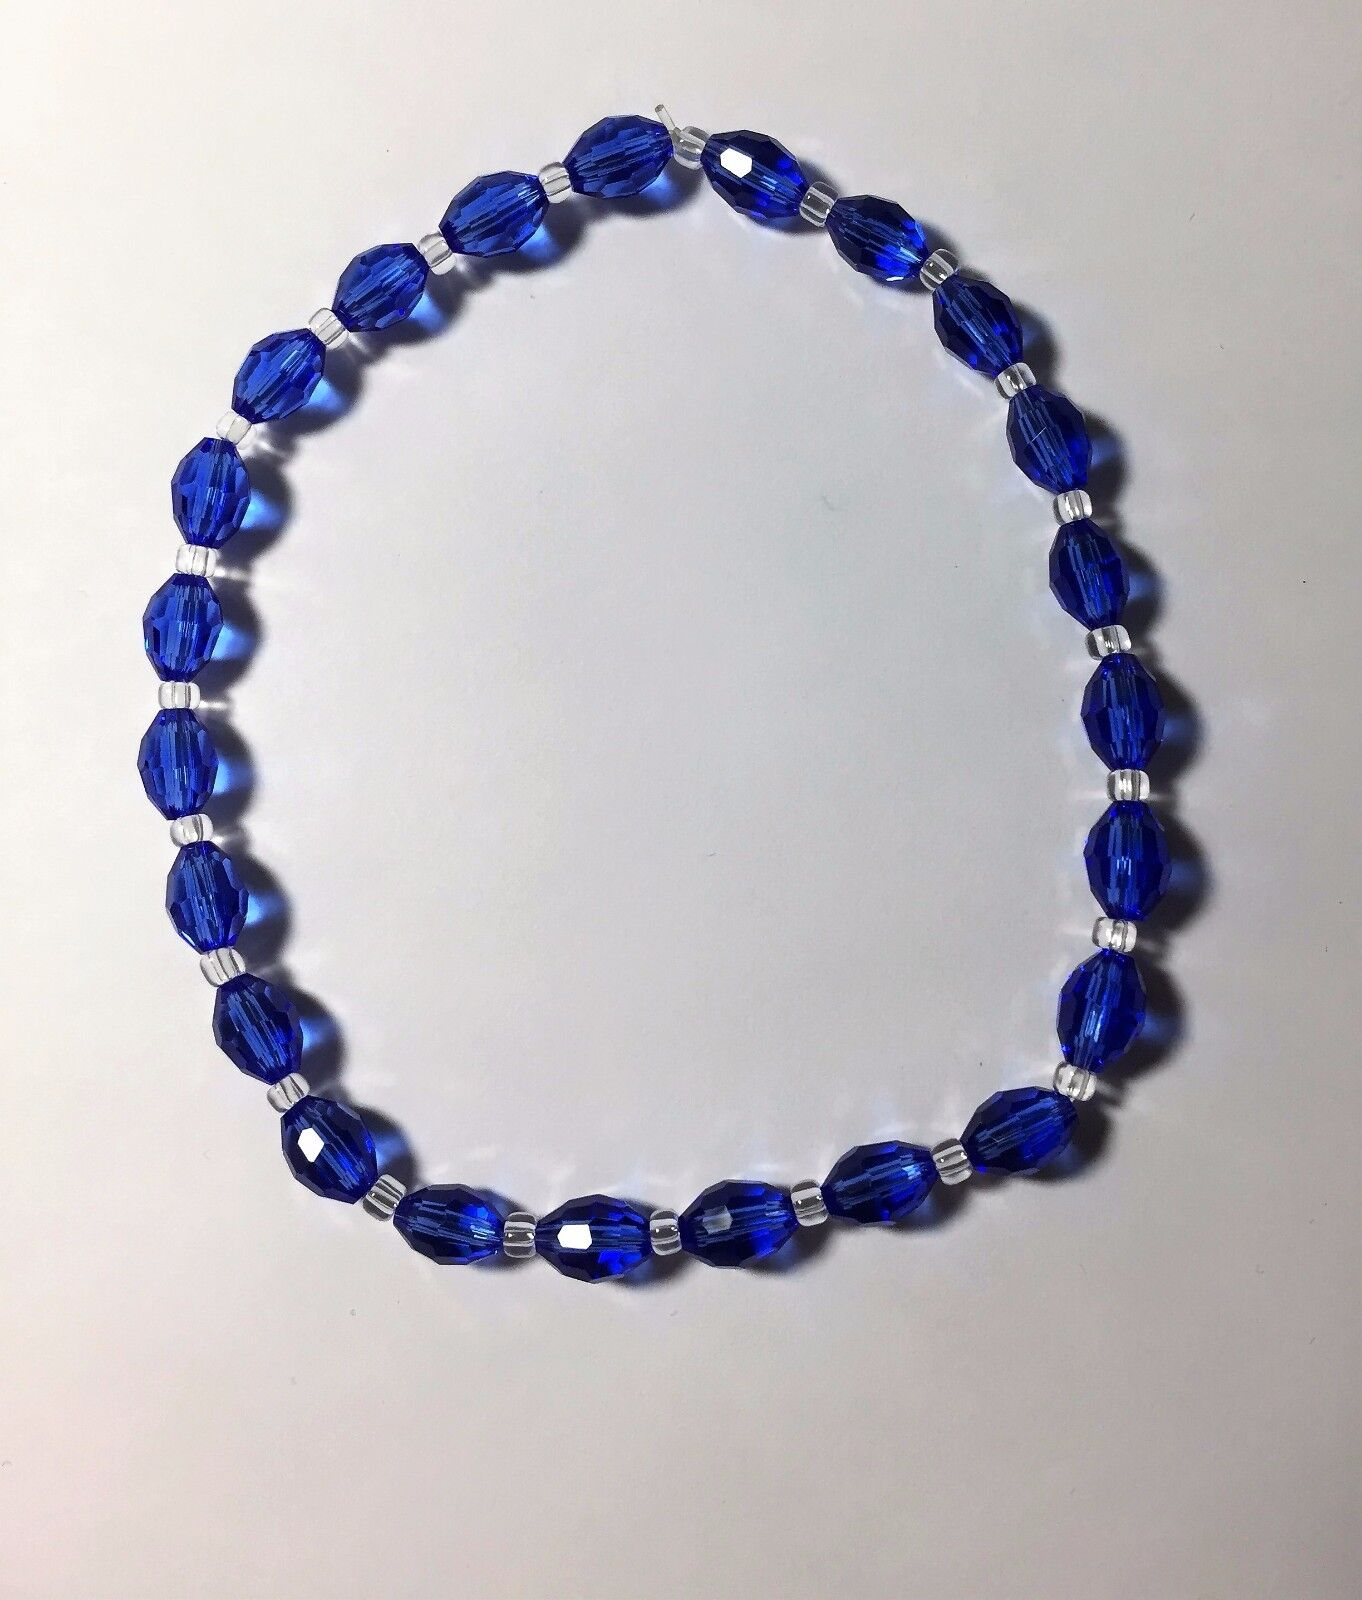 Celestial Crystal Stretch Ankle Bracelet - Oval Blue Beads - 10""